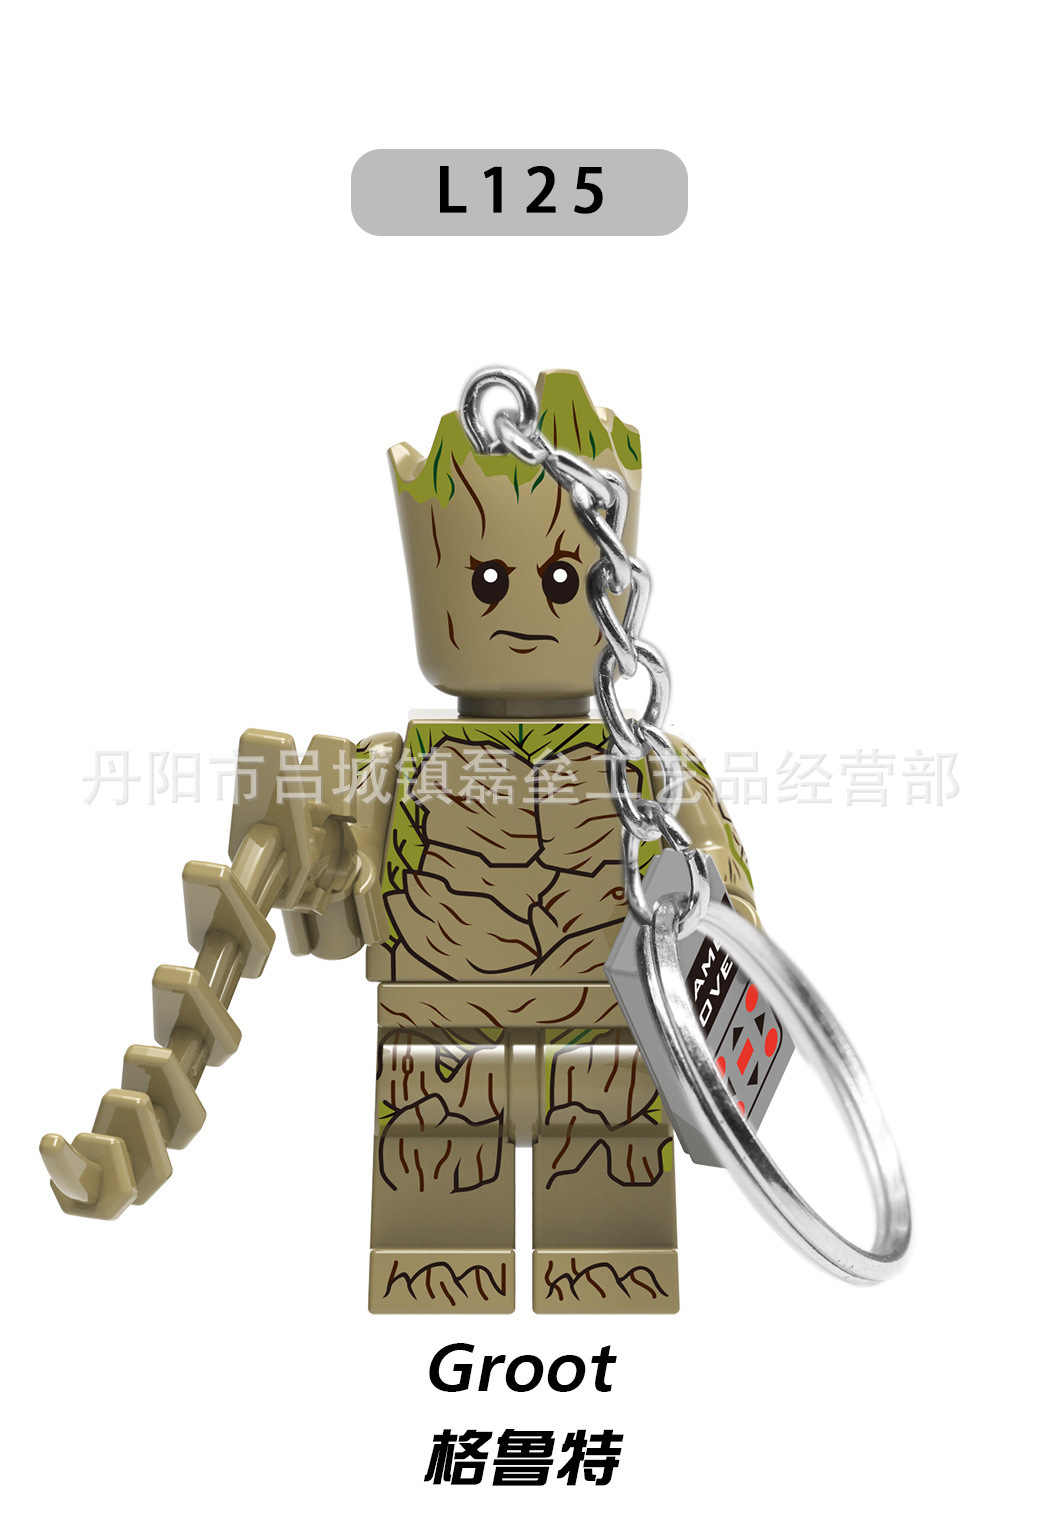 <strong>keychain</strong> pendant ironman spiderman groot supergiant key ring